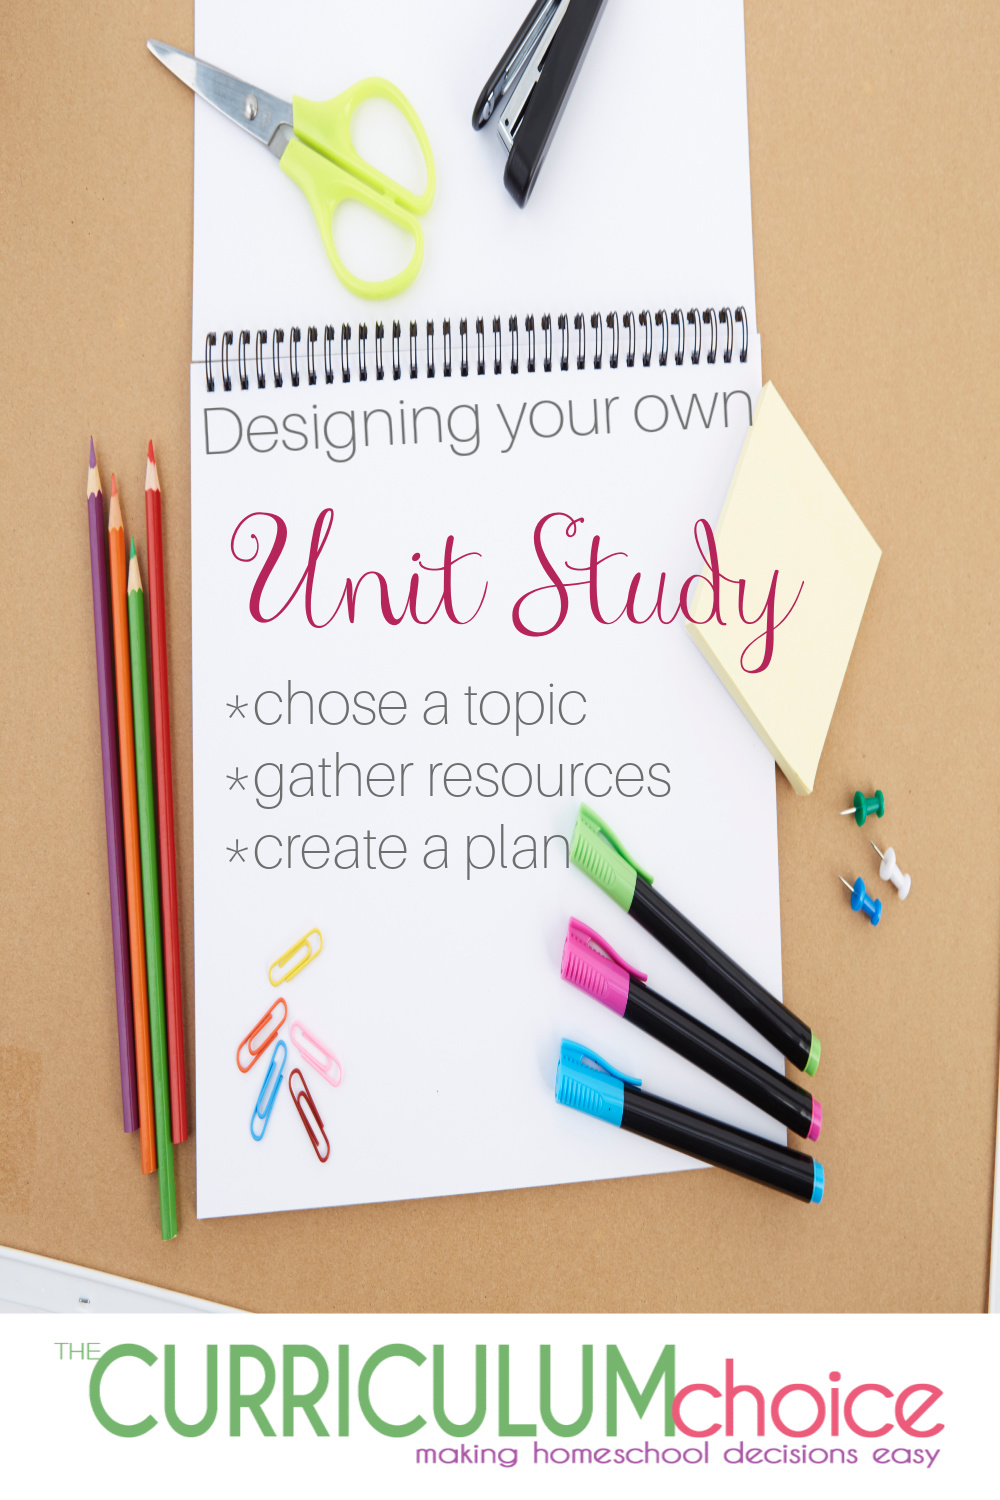 Designing Your Own Unit Study creates a tailor made learning experience and a rich, meaningful way of learning for your homeschool. And it's not as hard as you might think! Come along and learn how you can get to creating your own homeschool unit studies.